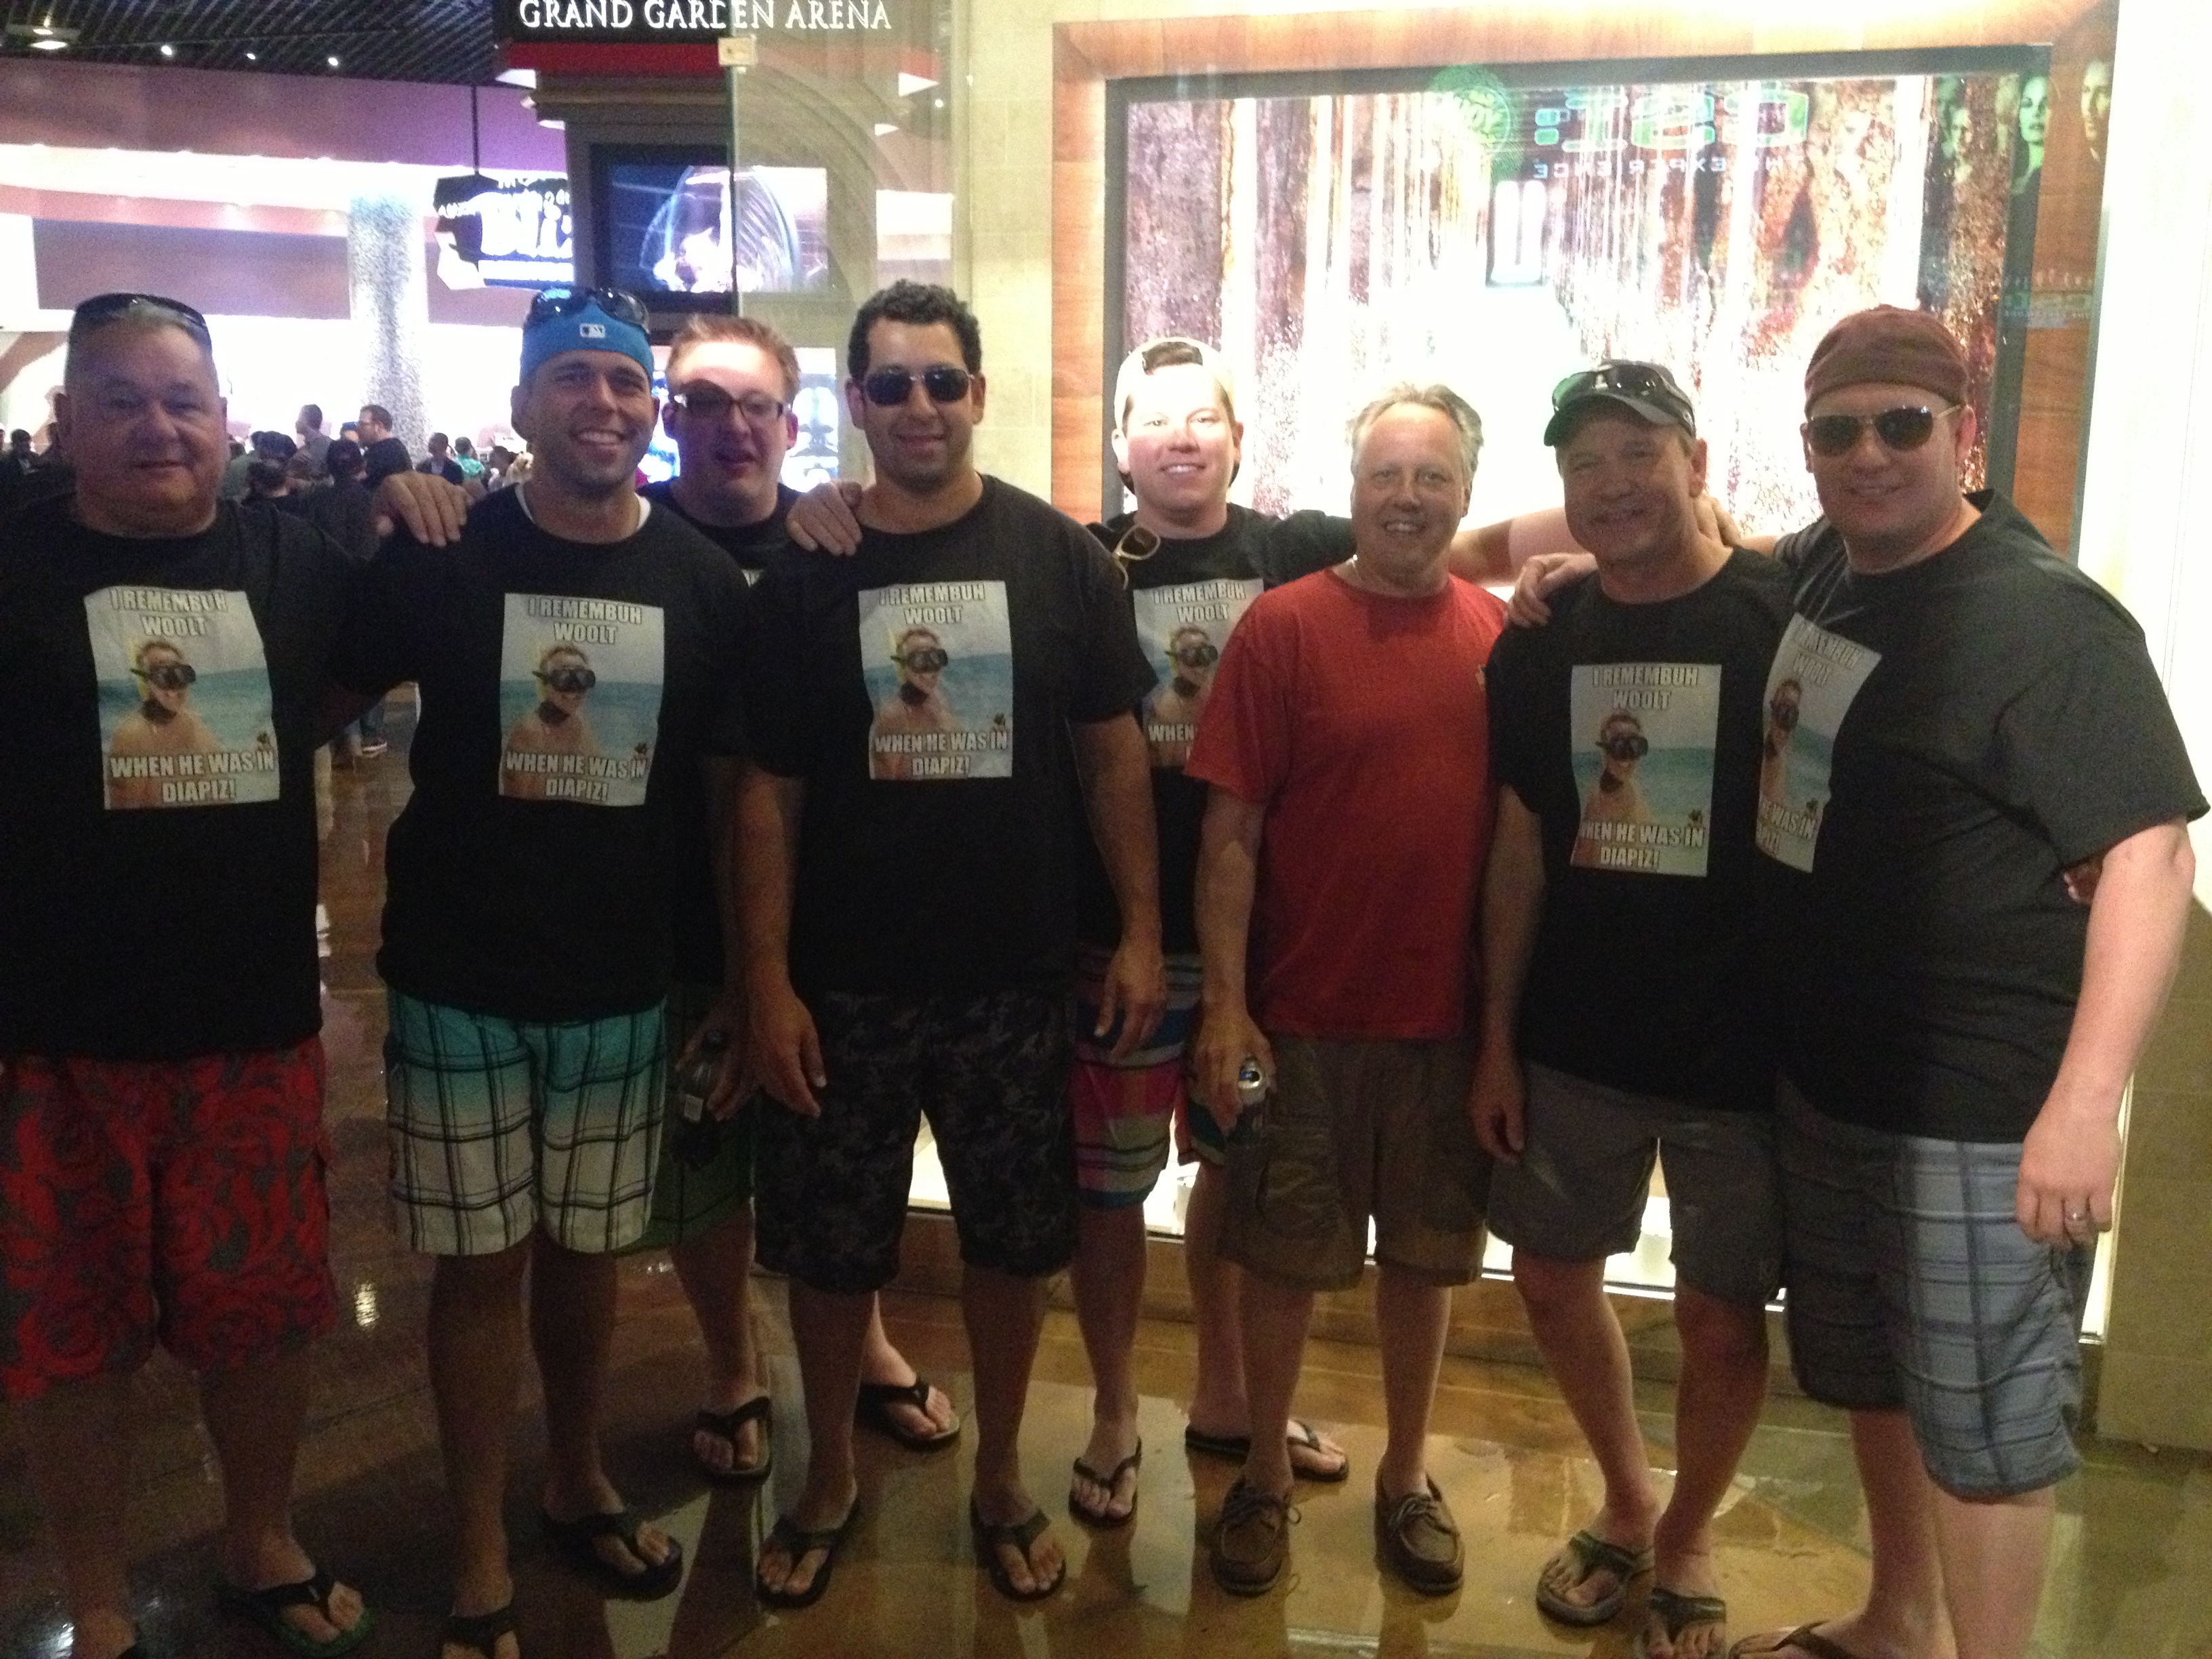 custom t-shirts for woolt bachelor party weekend in vegas - shirt